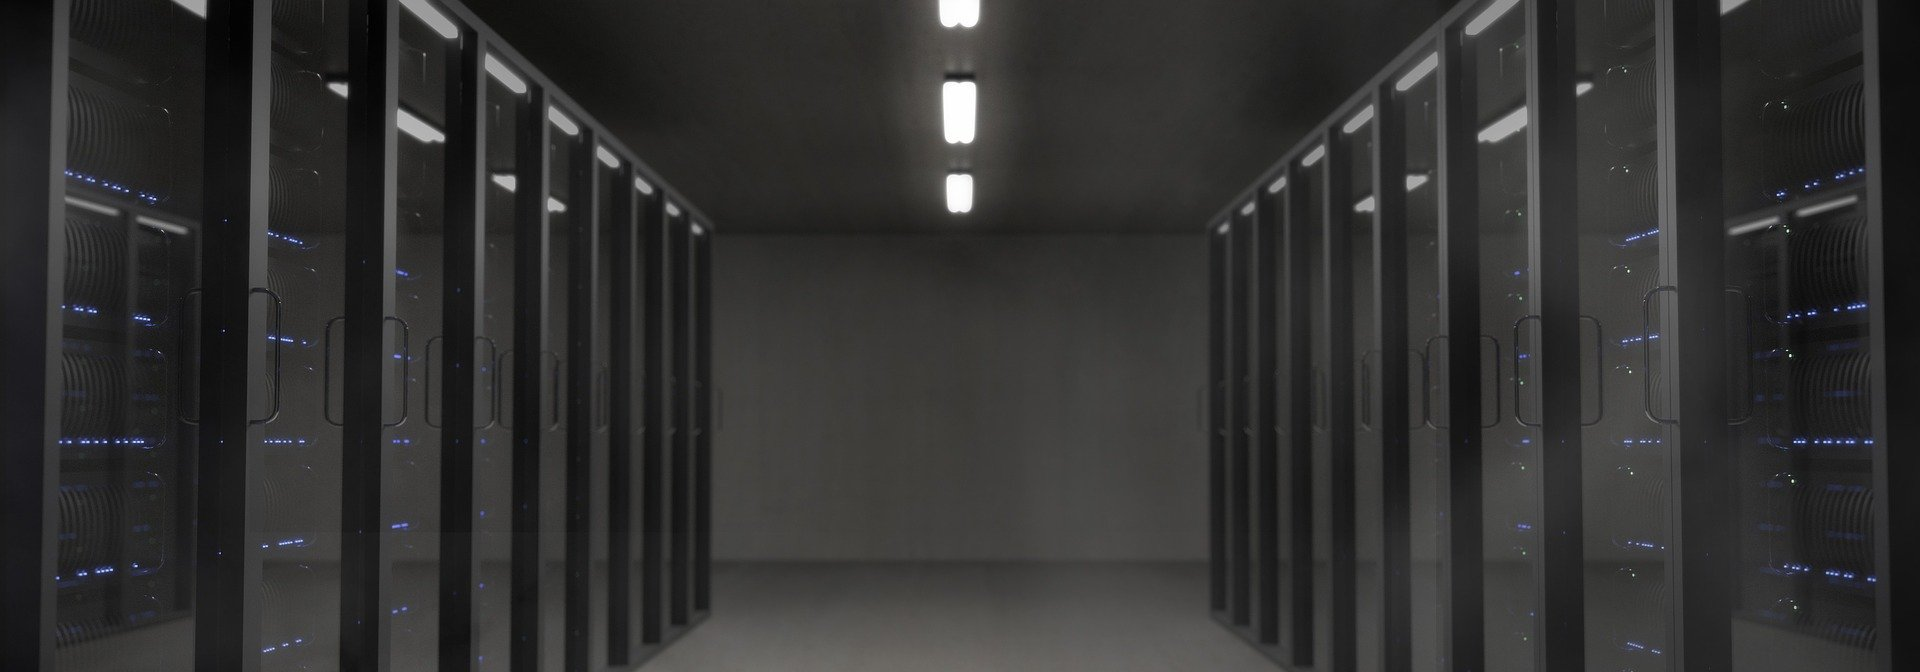 Image of a space with many servers. A server room.